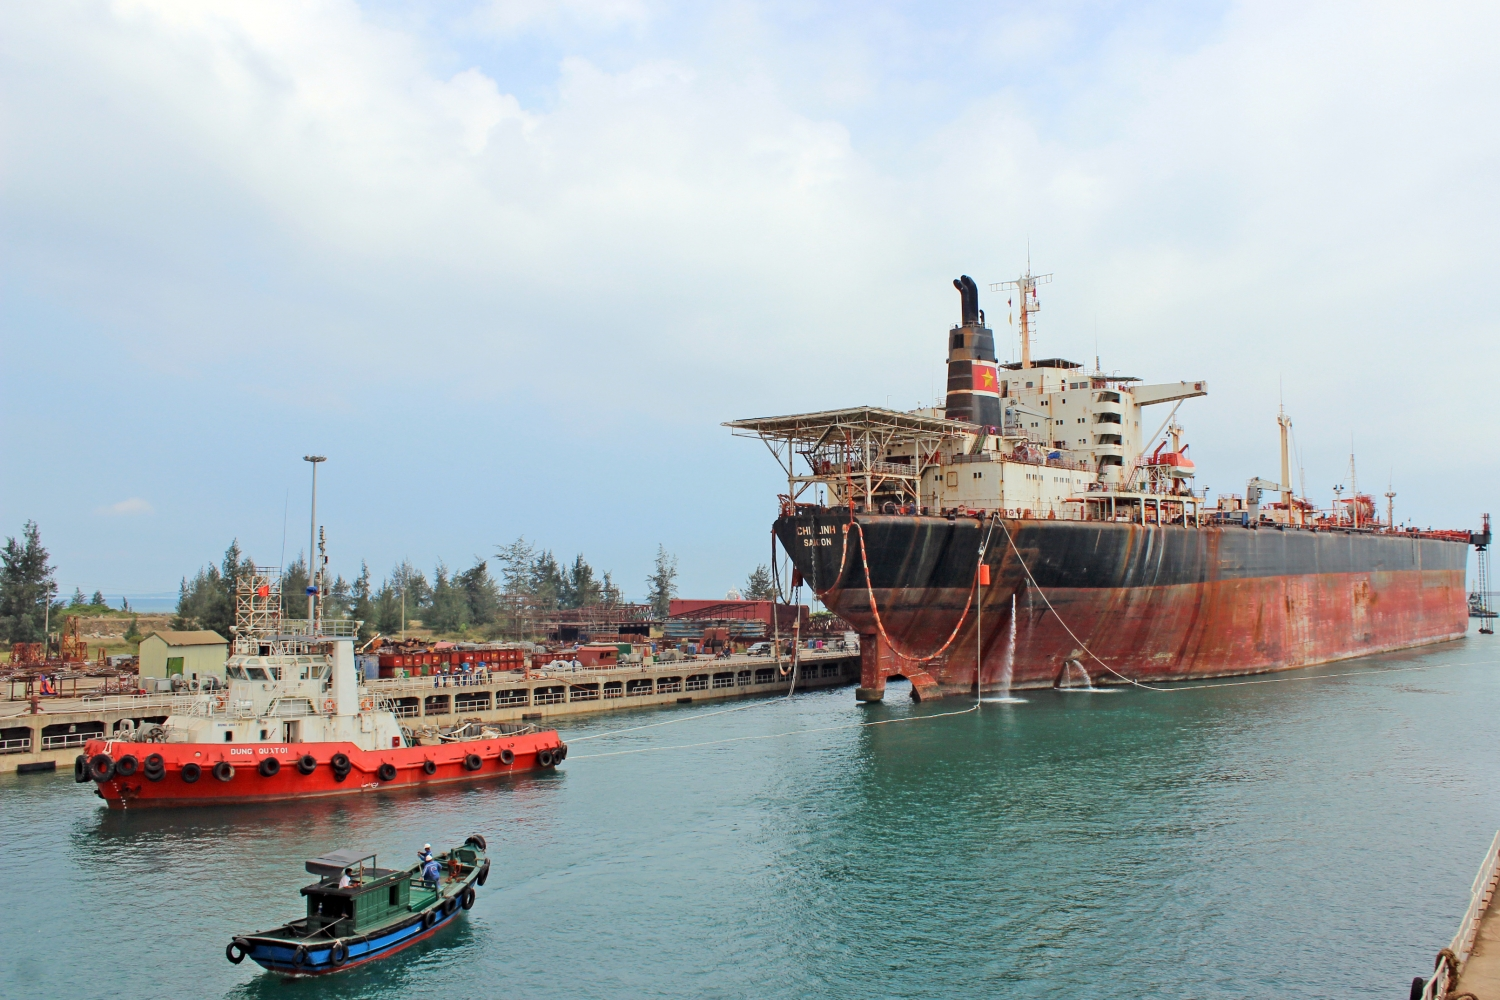 Vietnam's shipbuilding industry is now